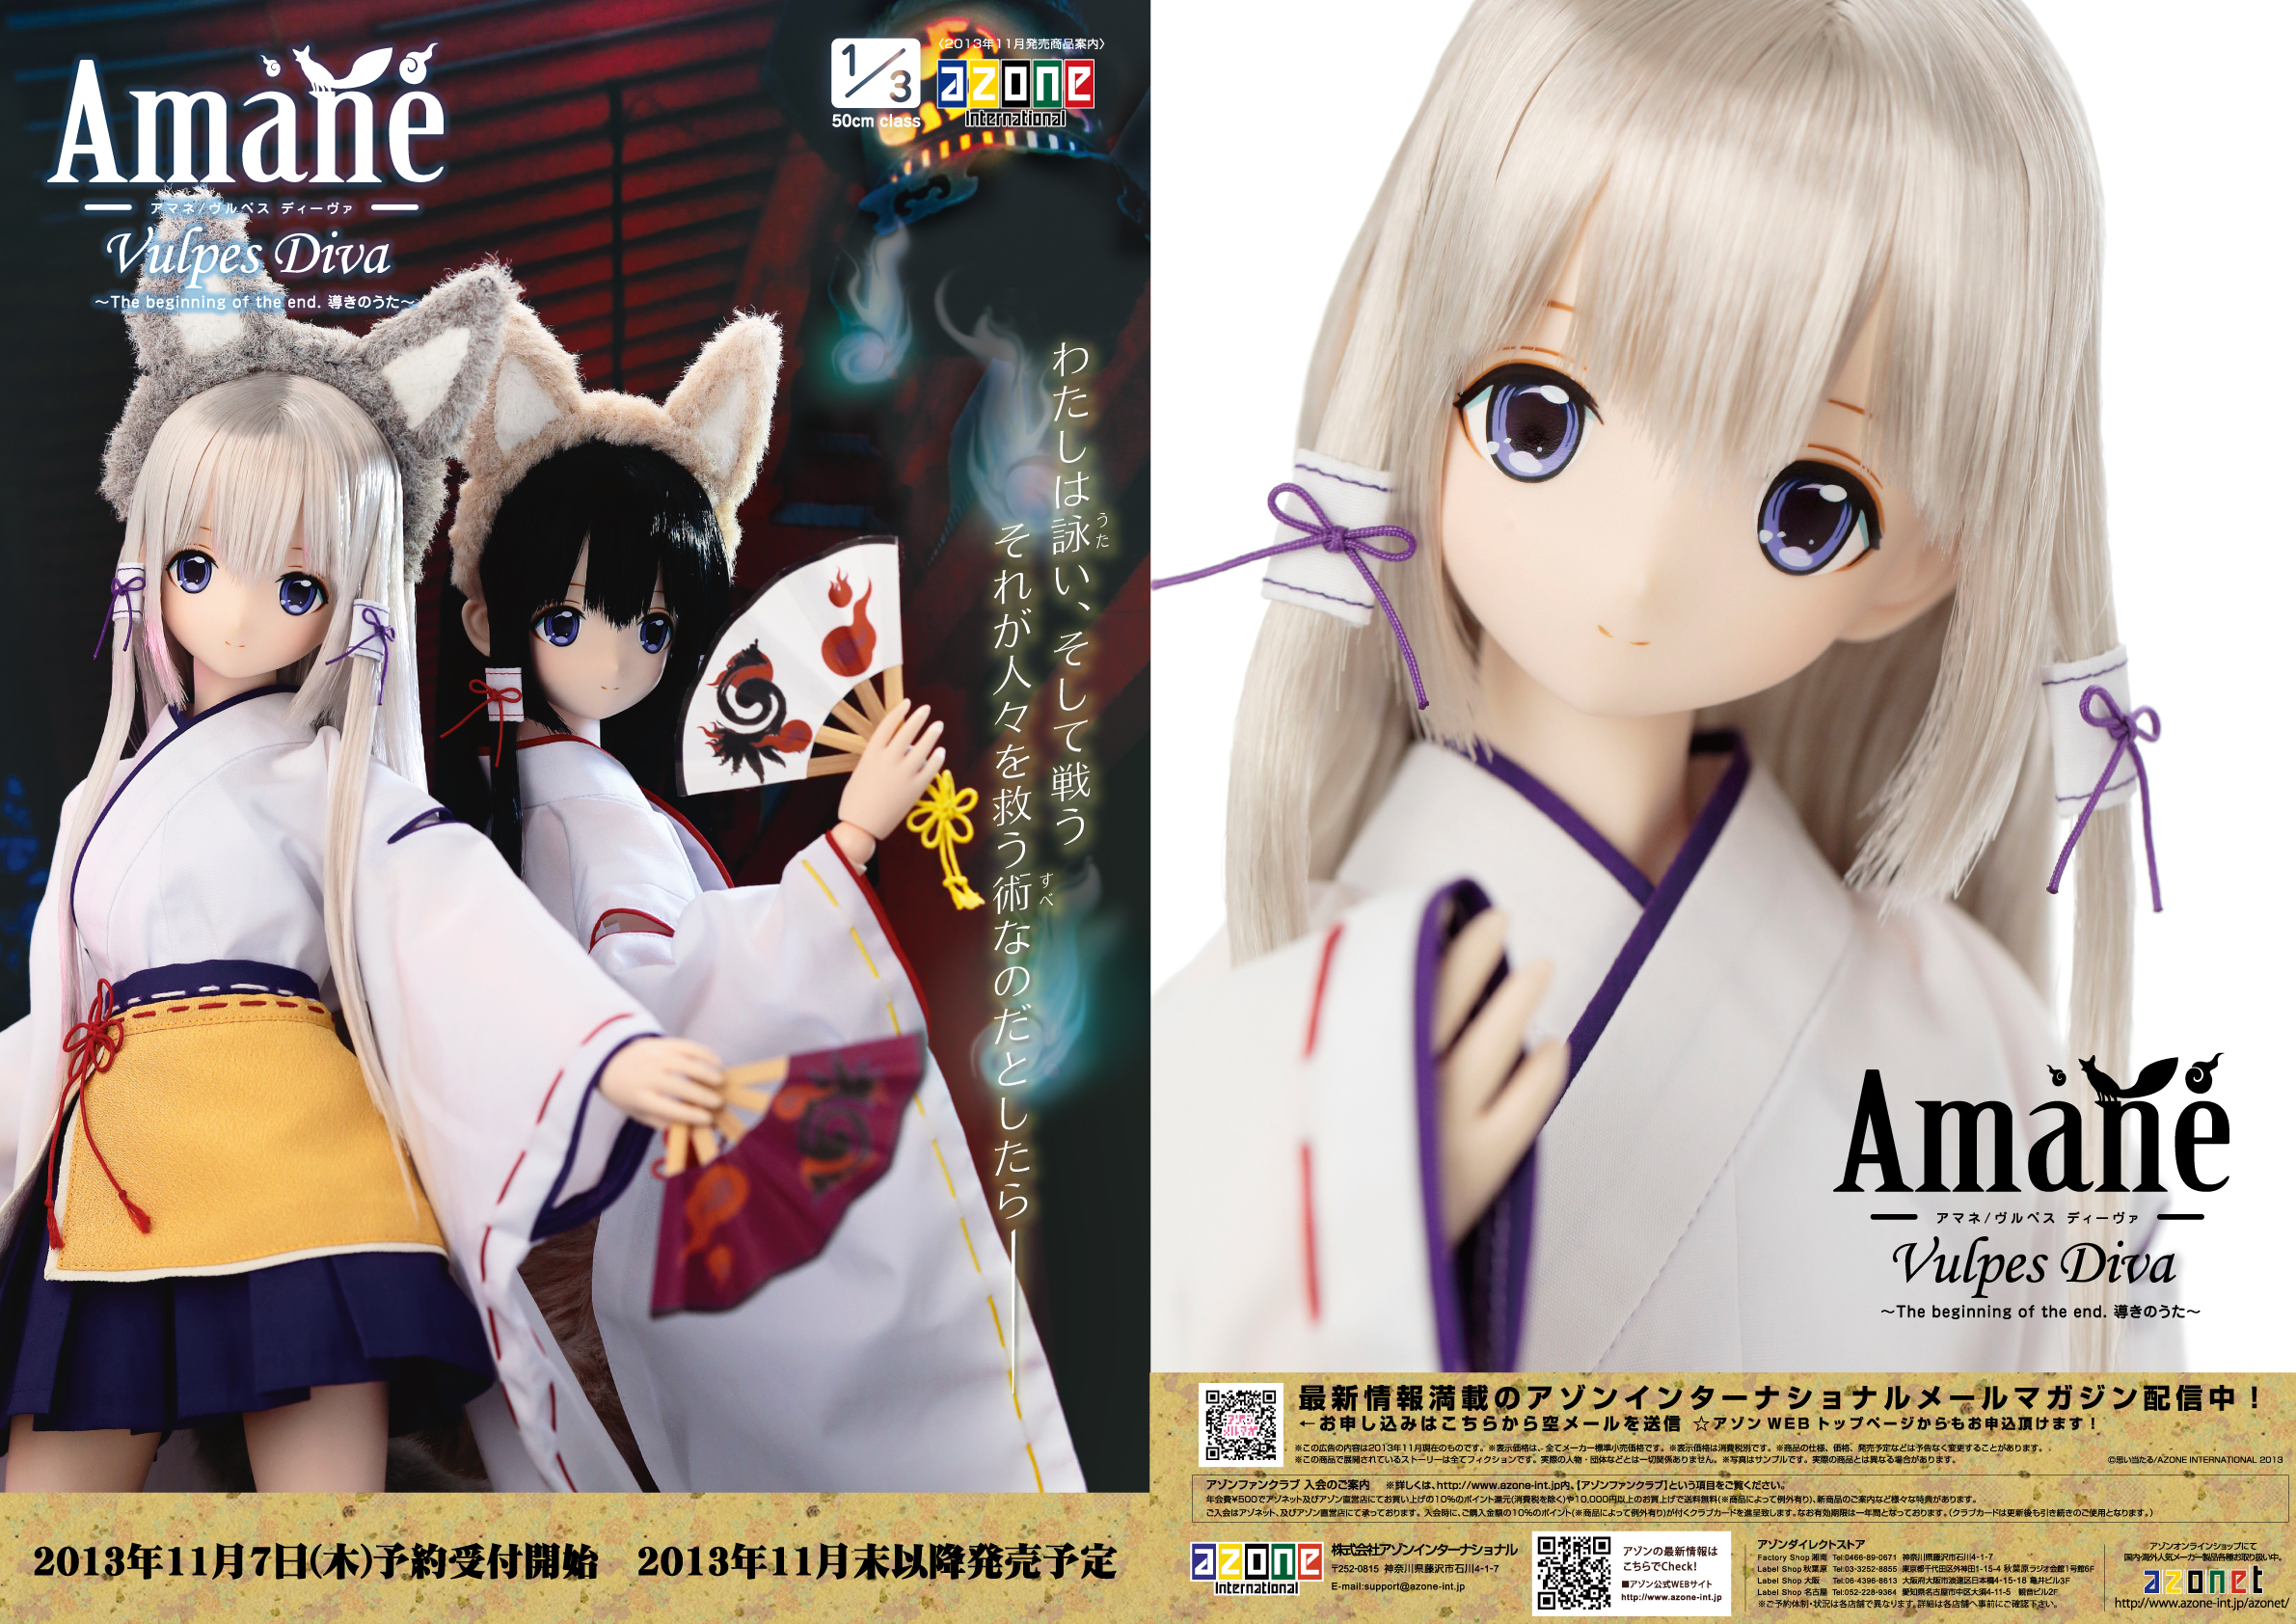 Amane/Vulpes Diva~The beginning of the end. 導きのうた~